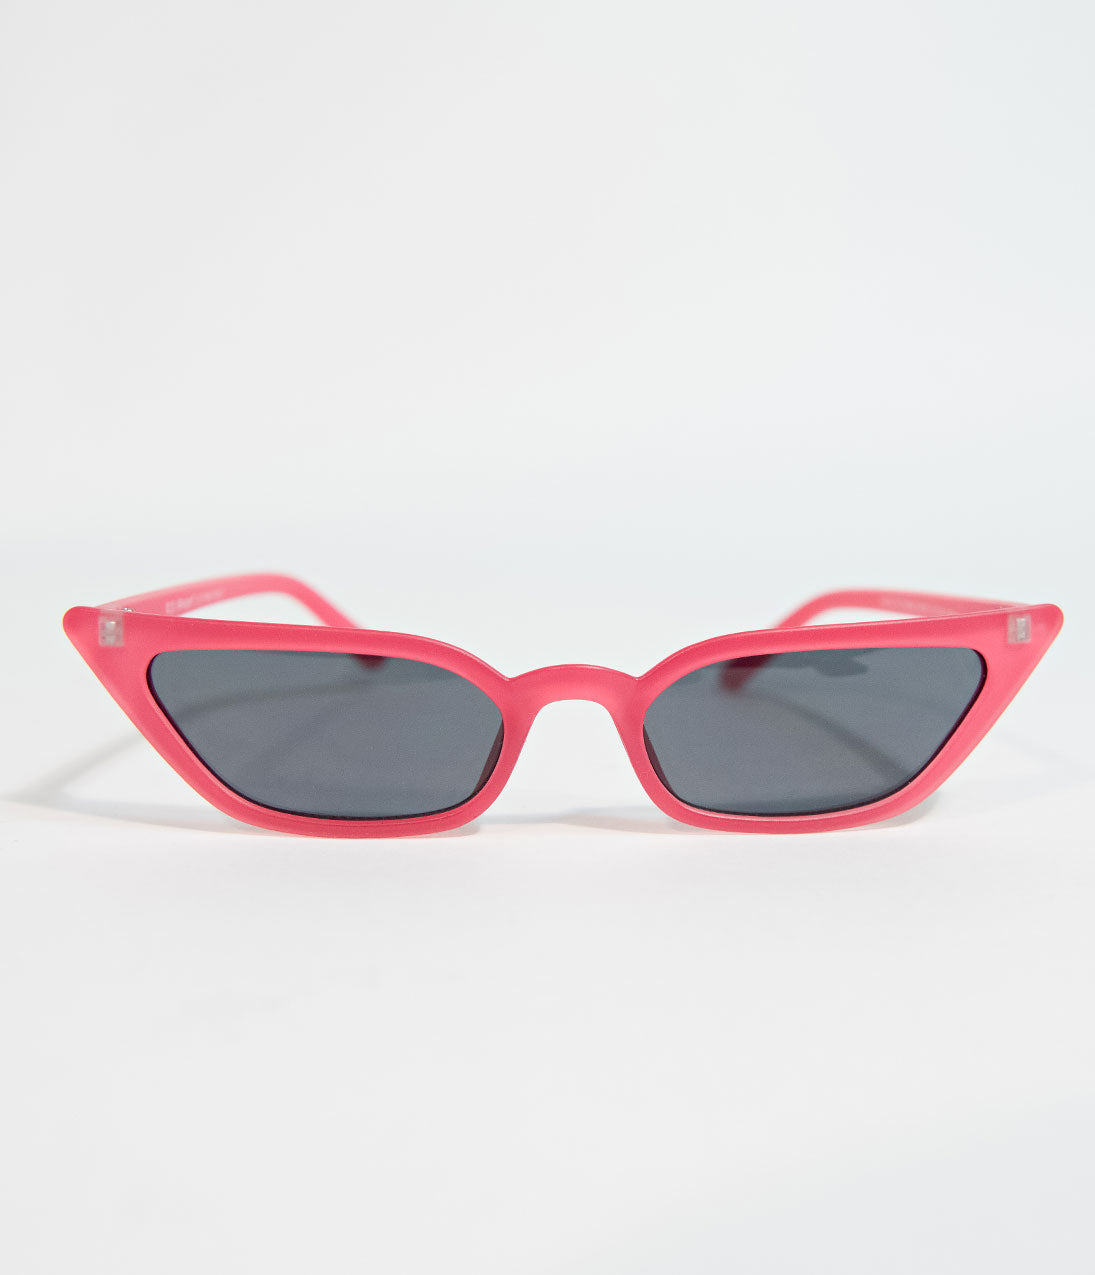 974730ceb2 1950s Sunglasses   50s Glasses